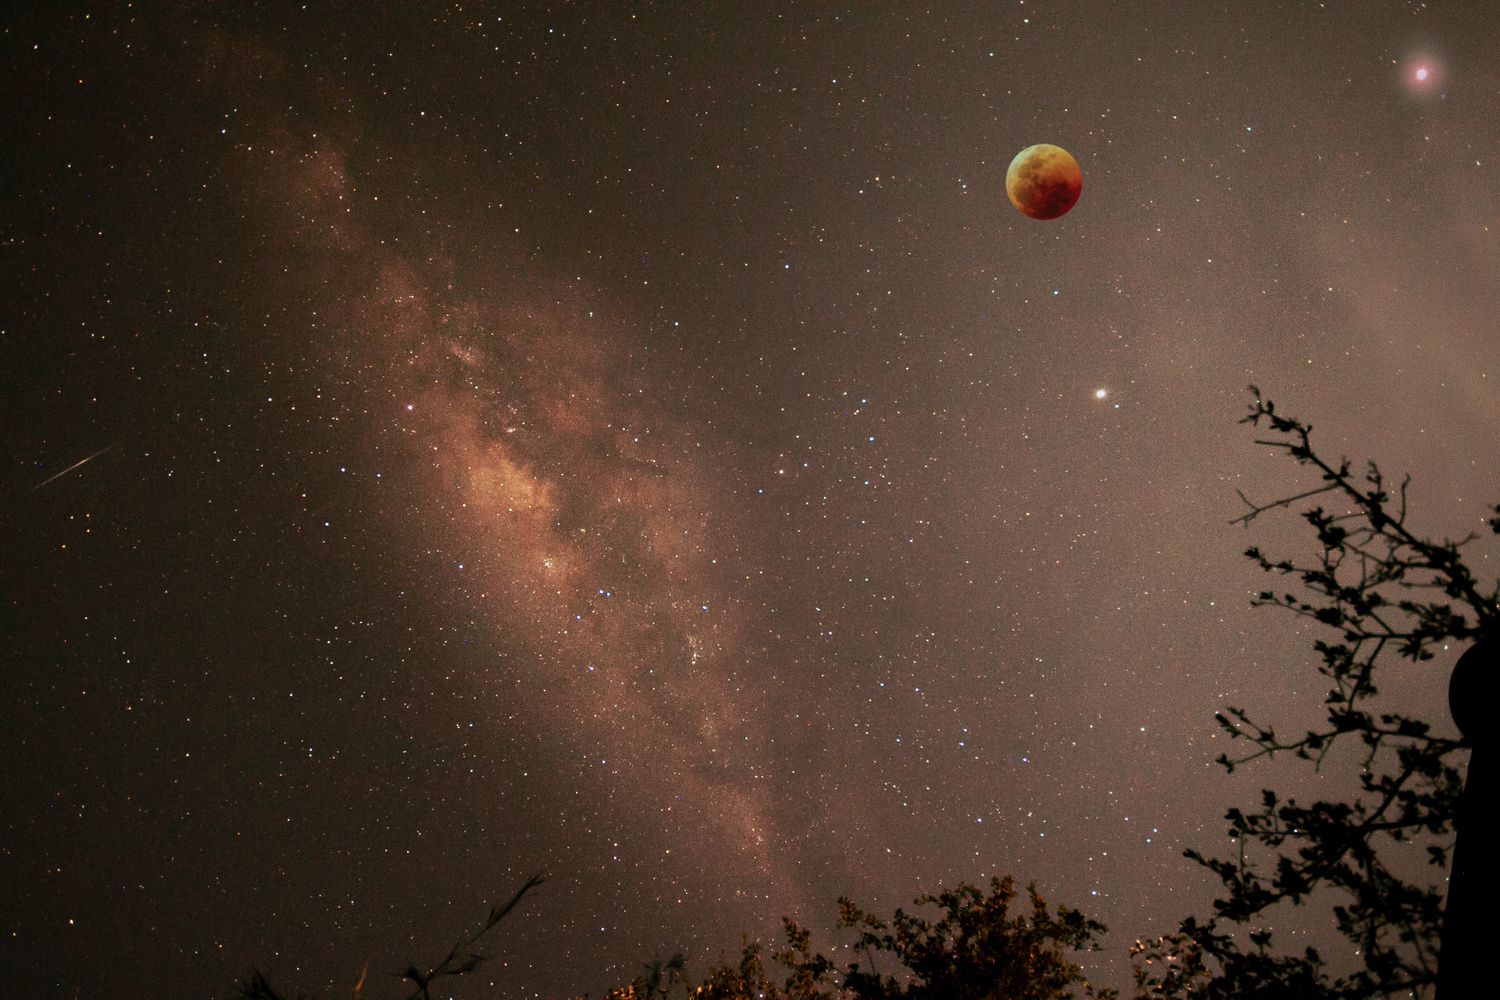 Milky way and lunar Eclipse  by Ken Stavrou